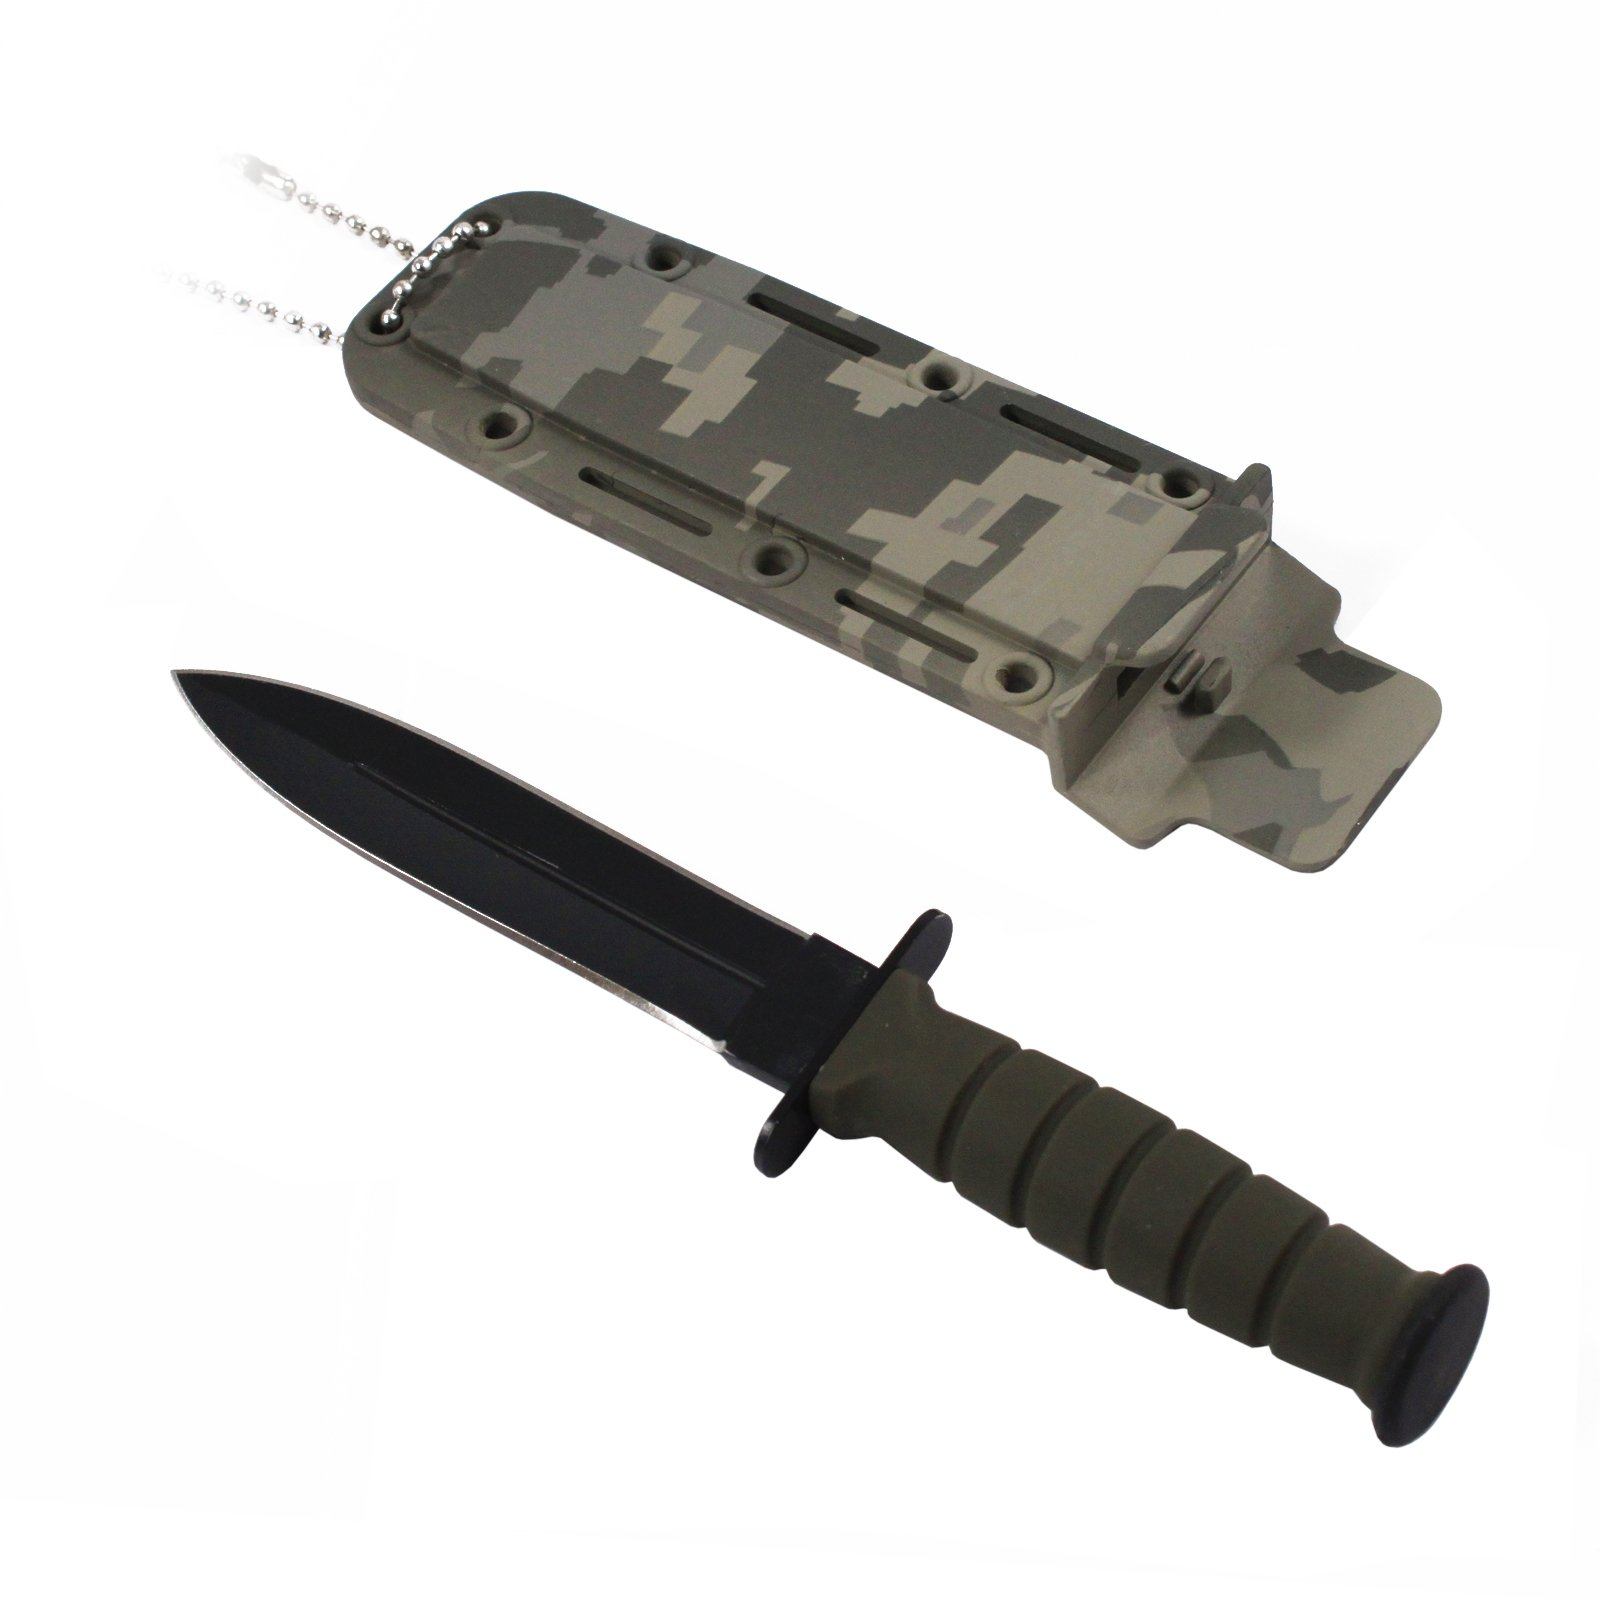 6inch ASR Tactical Serrated Fixed Blade Dagger Hunting Neck Knife - Camo